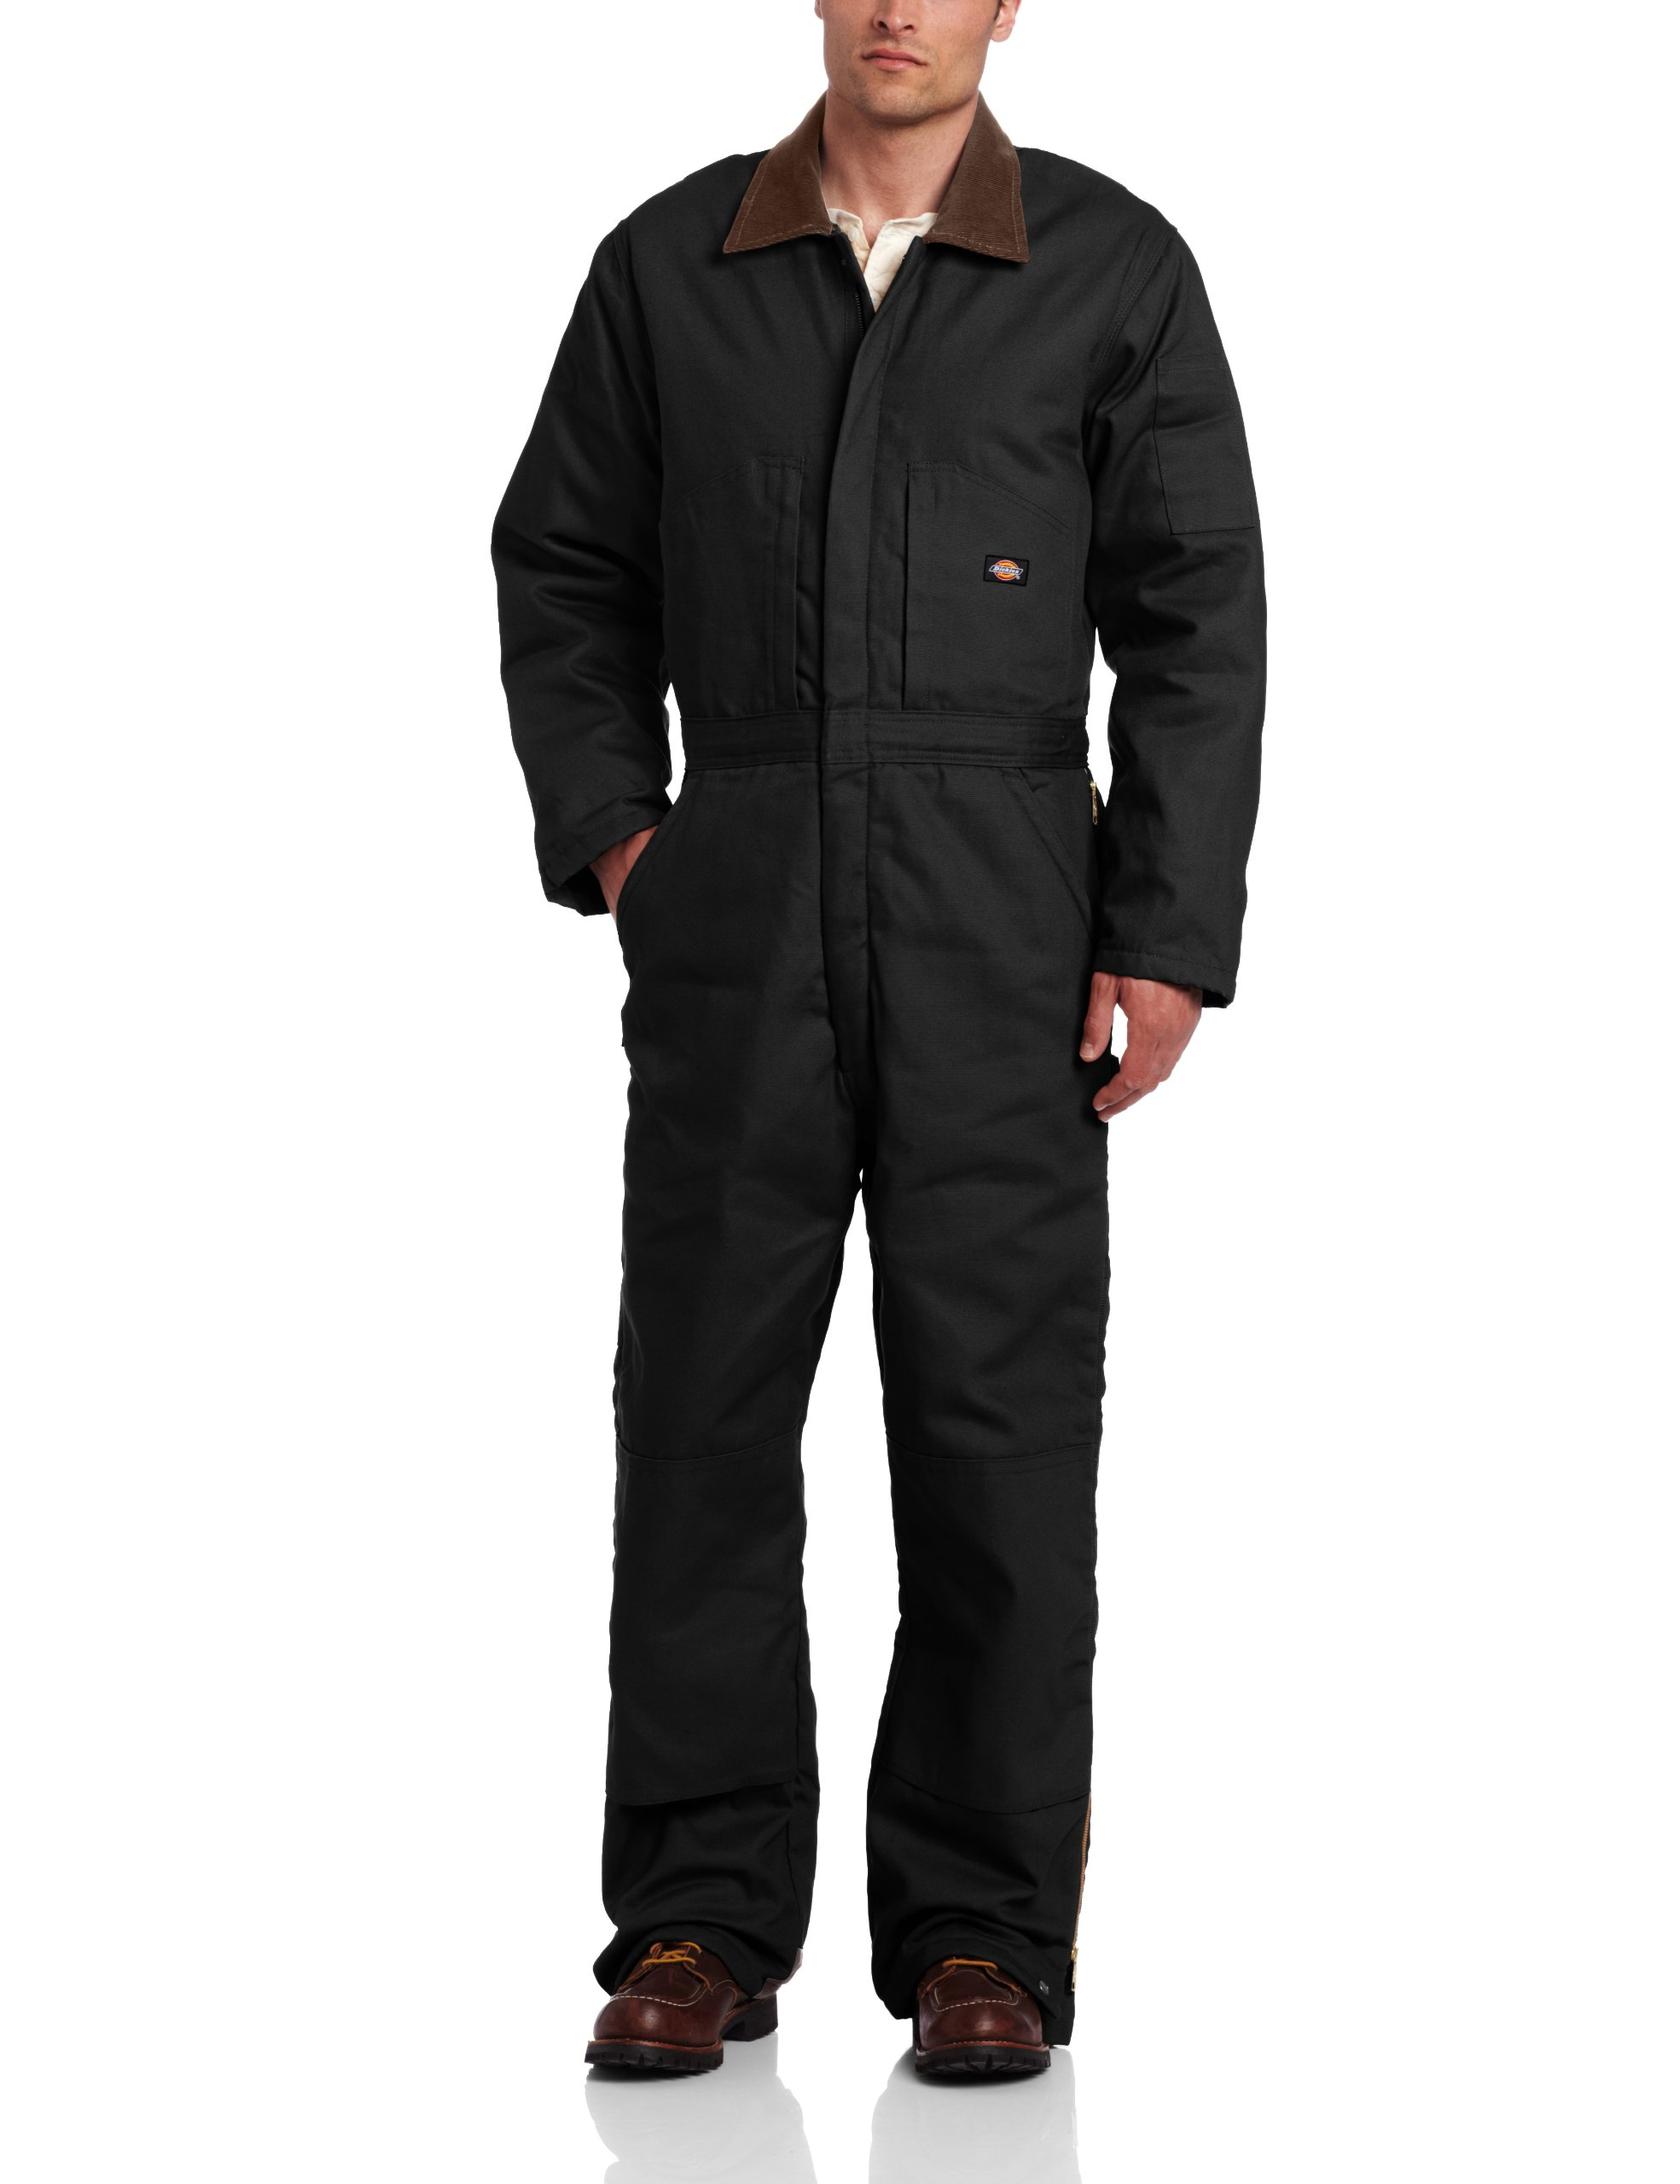 Dickies Insulated Coverall Black Large Regular